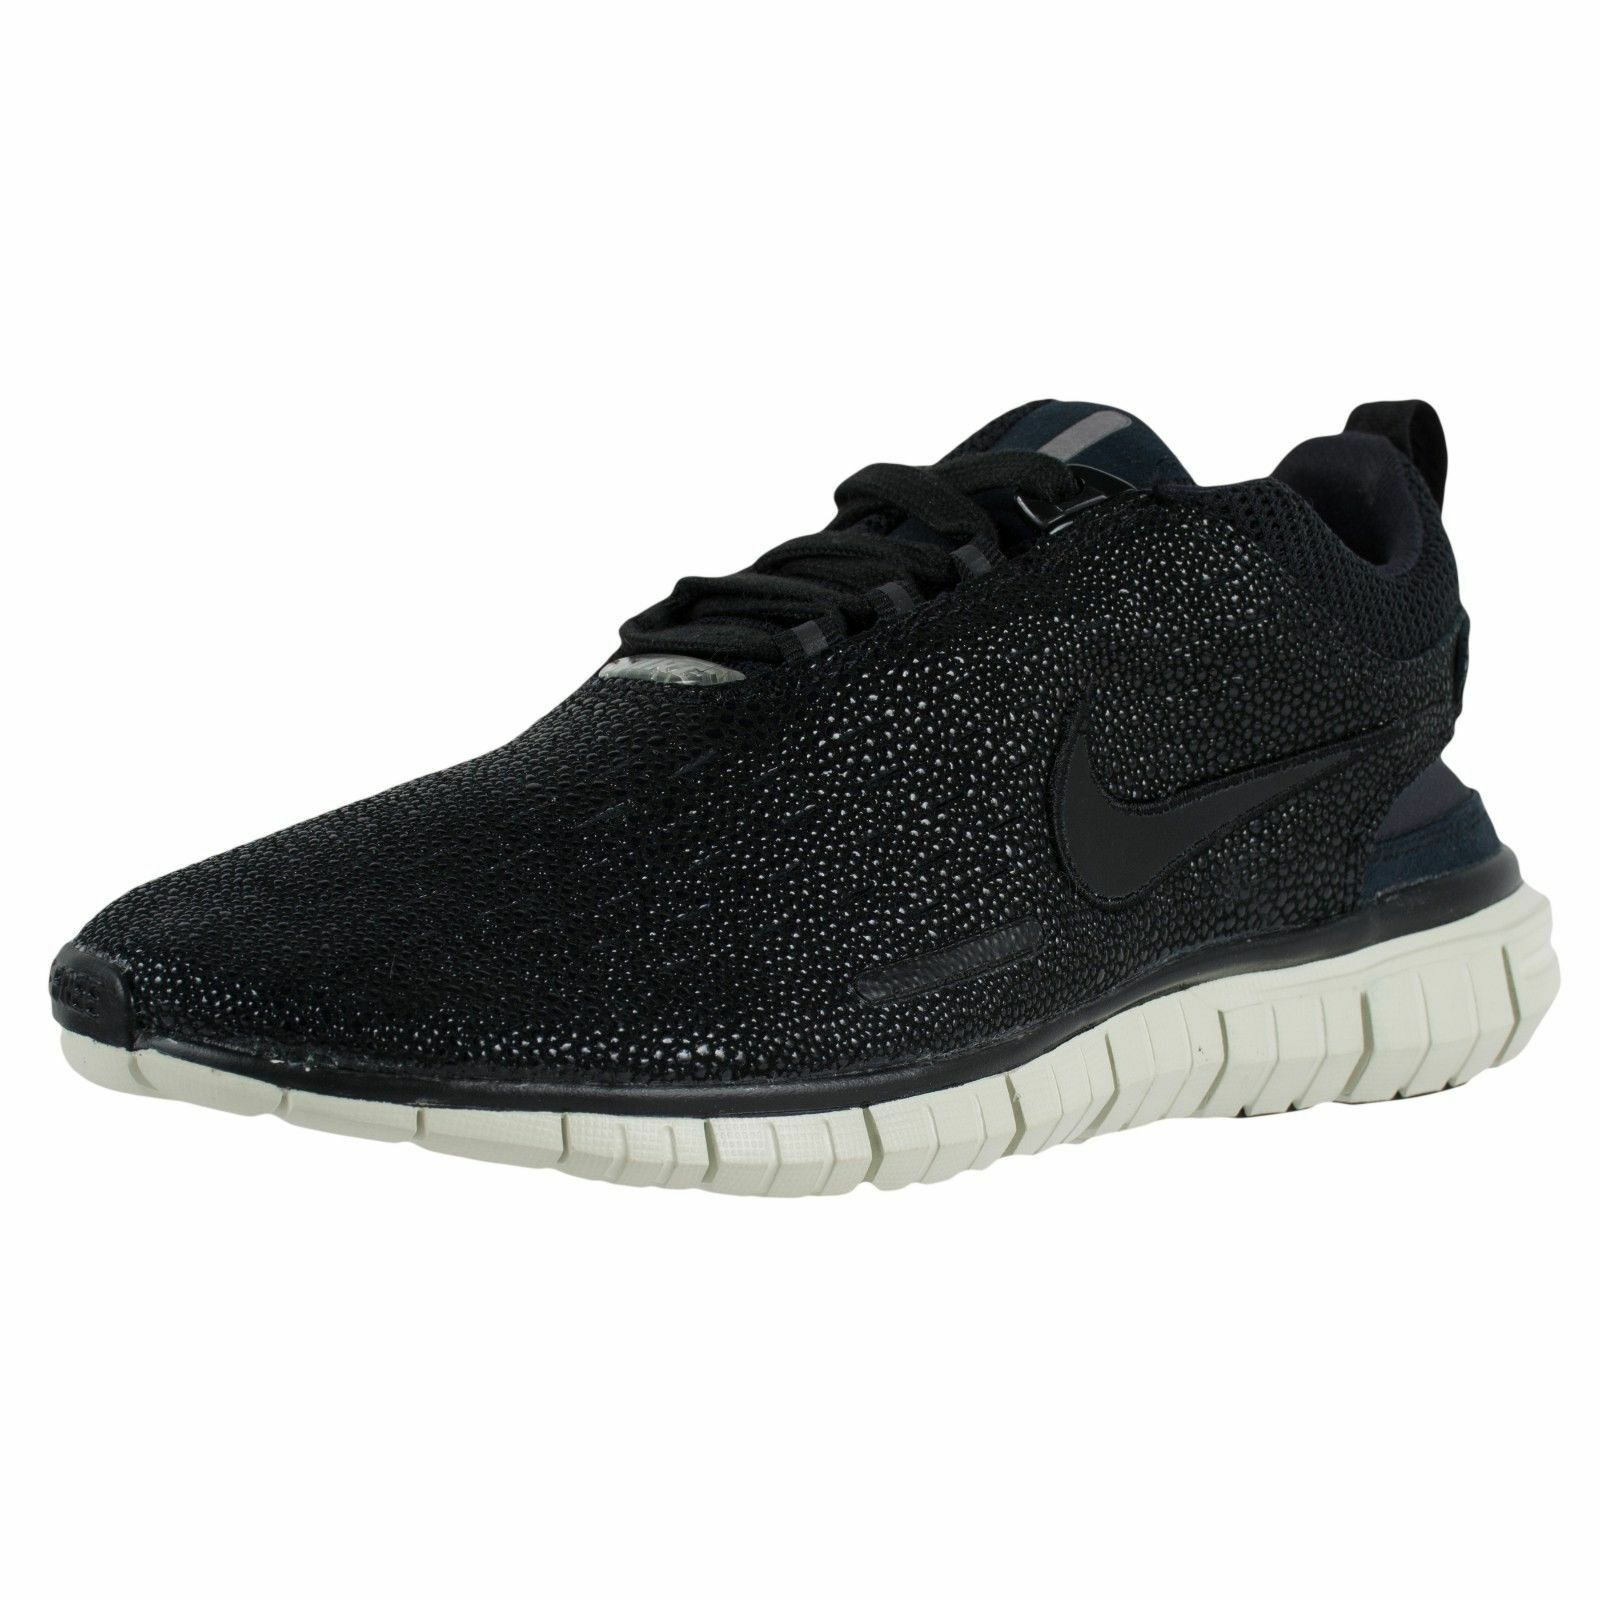 NIKE FREE OG 14 PA SNEAKERS STINGRAY PACK BLACK BLACK SEA GLASS 705006 001 Cheap and beautiful fashion